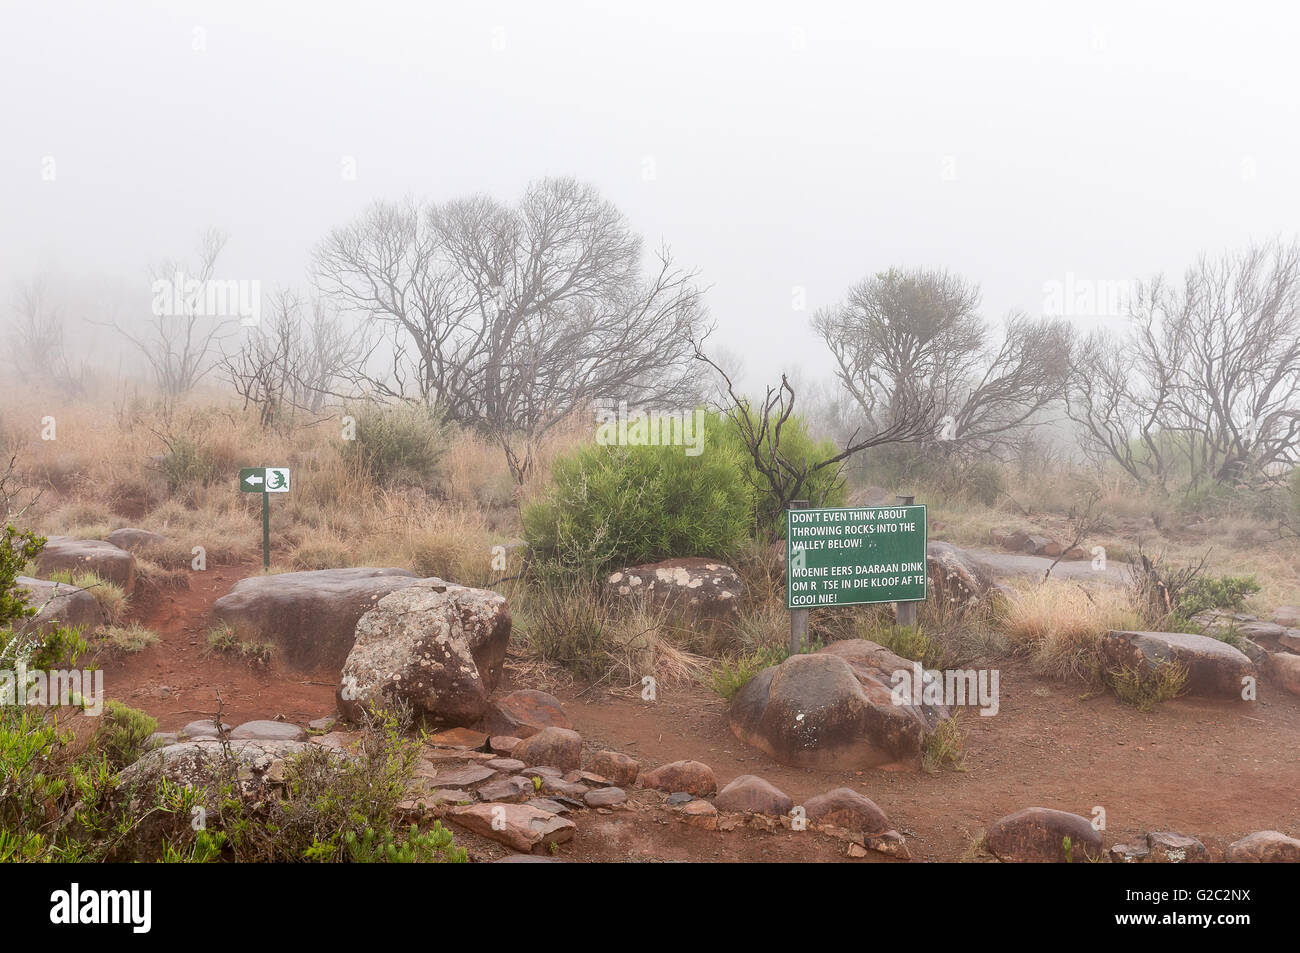 A warning sign and route marker in thick fog on the Crag Lizard trail near the Valley of Desolation viewpoint - Stock Image